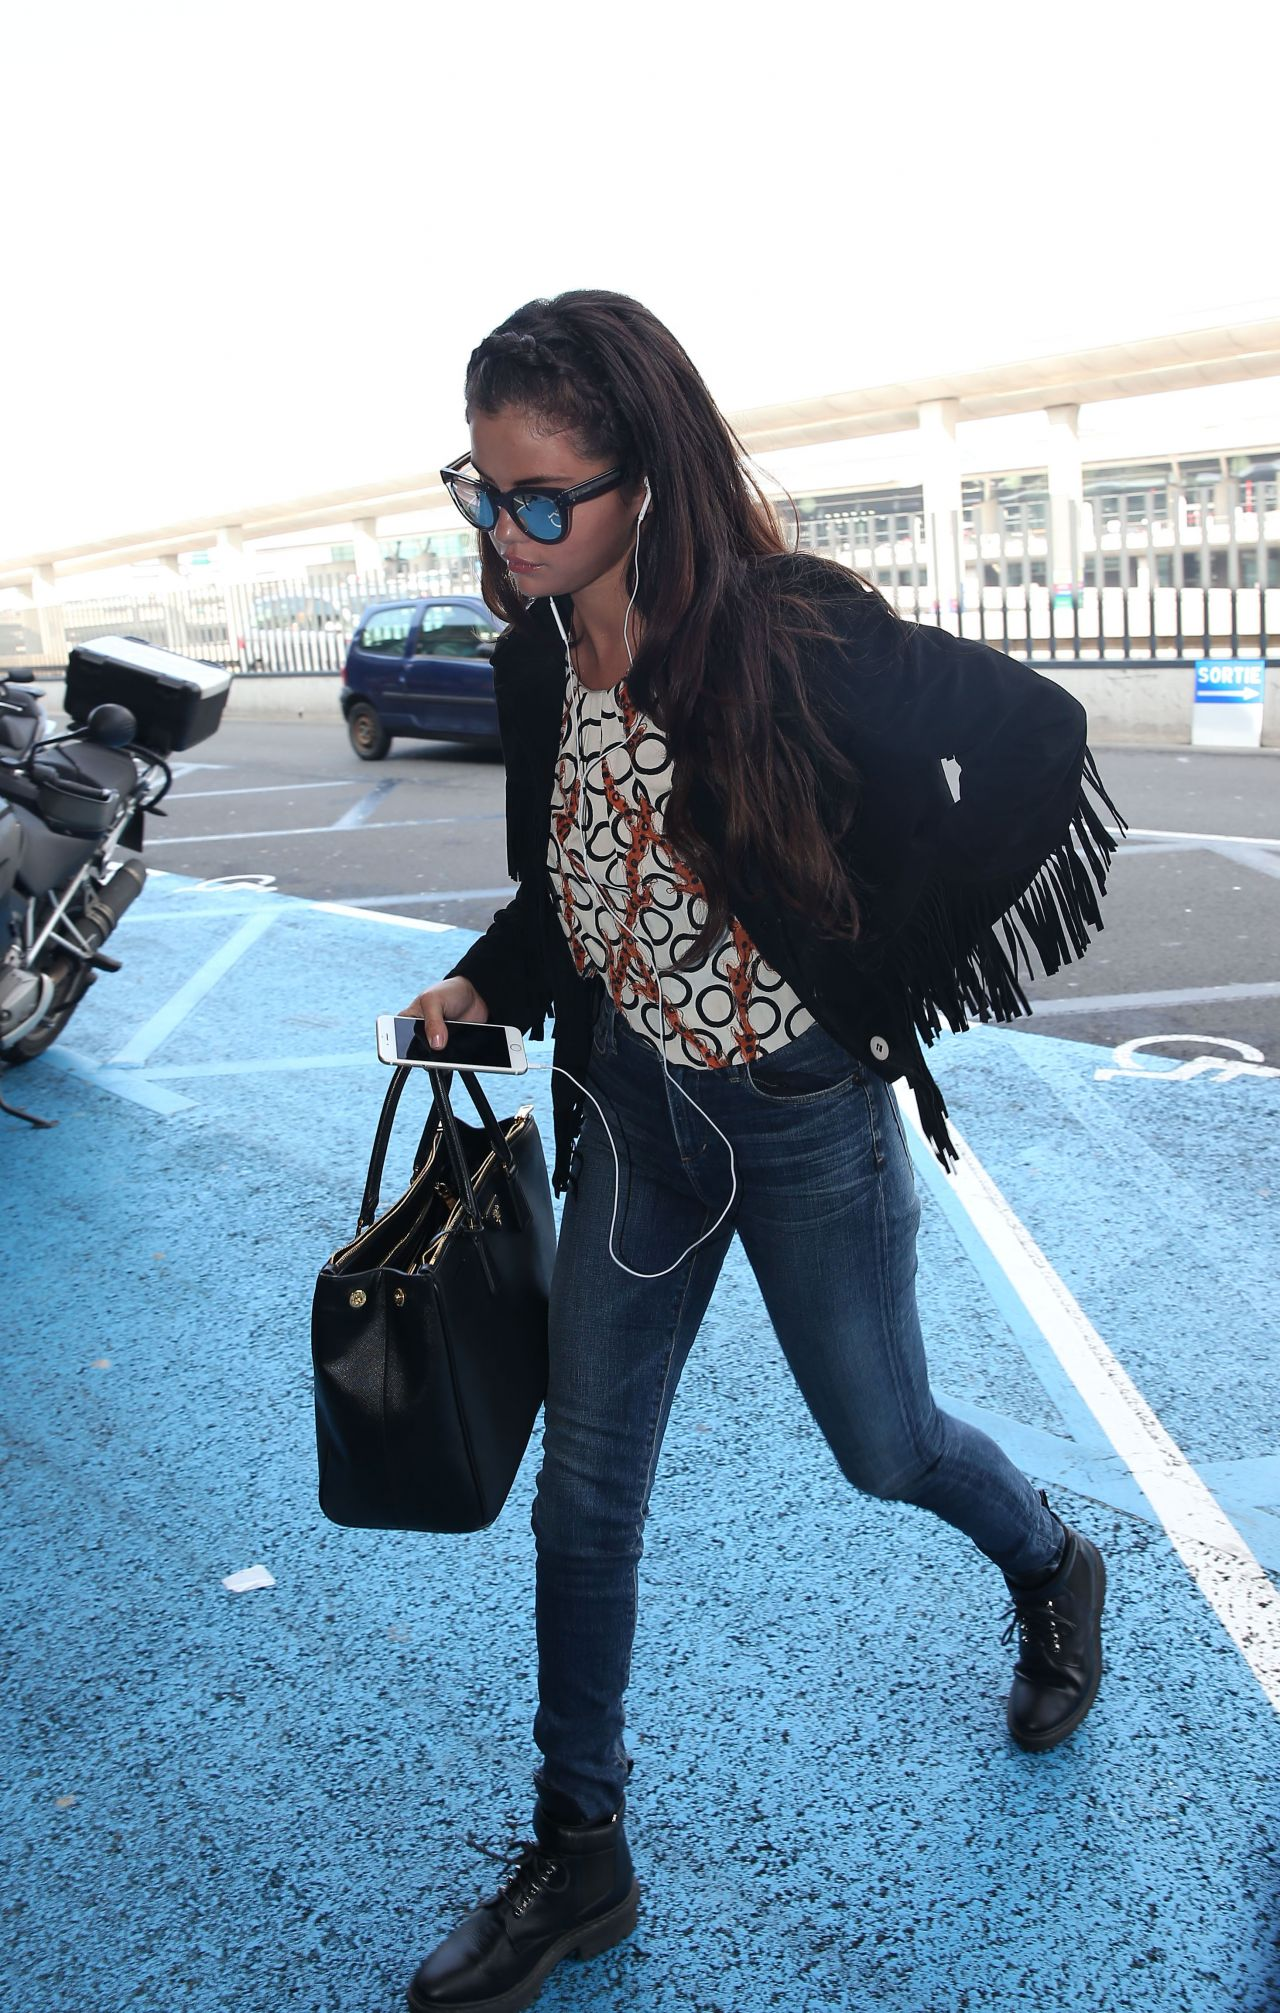 Selena Gomez Casual Style  at Charles De Gaulle Airport